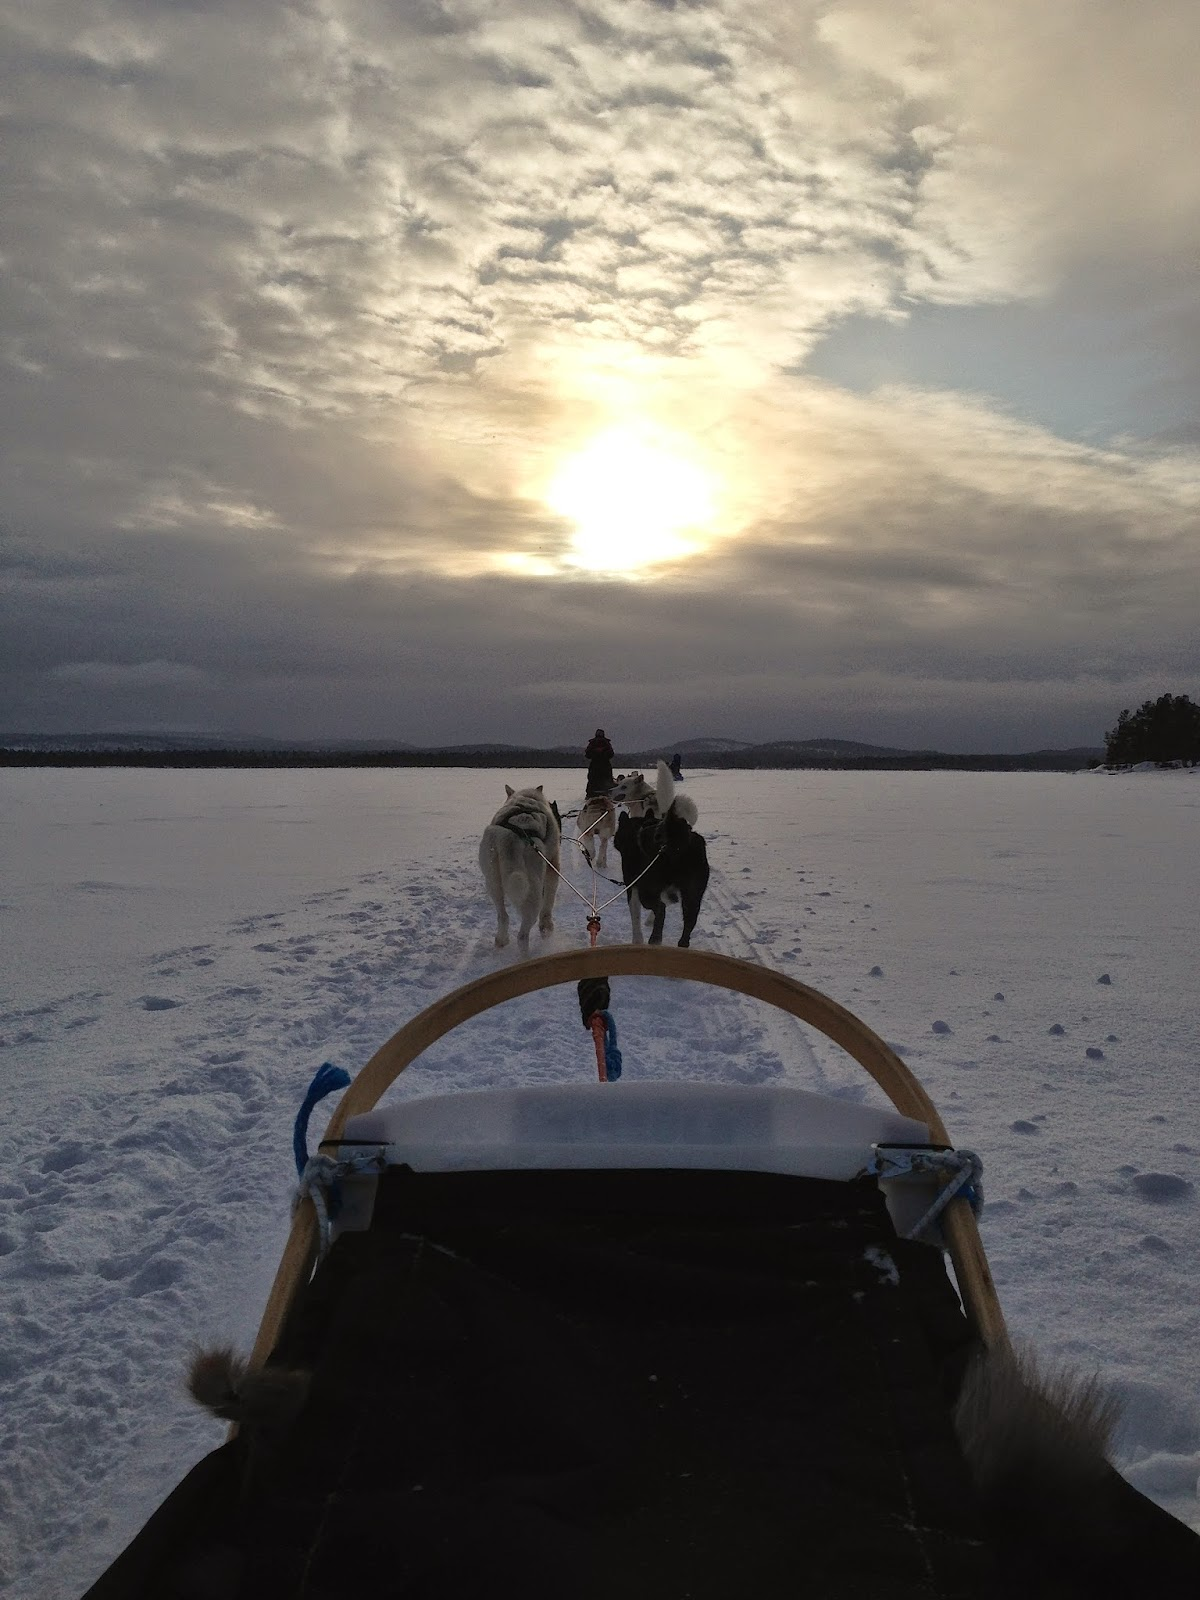 Husky Sled on Lake Inari, Finland